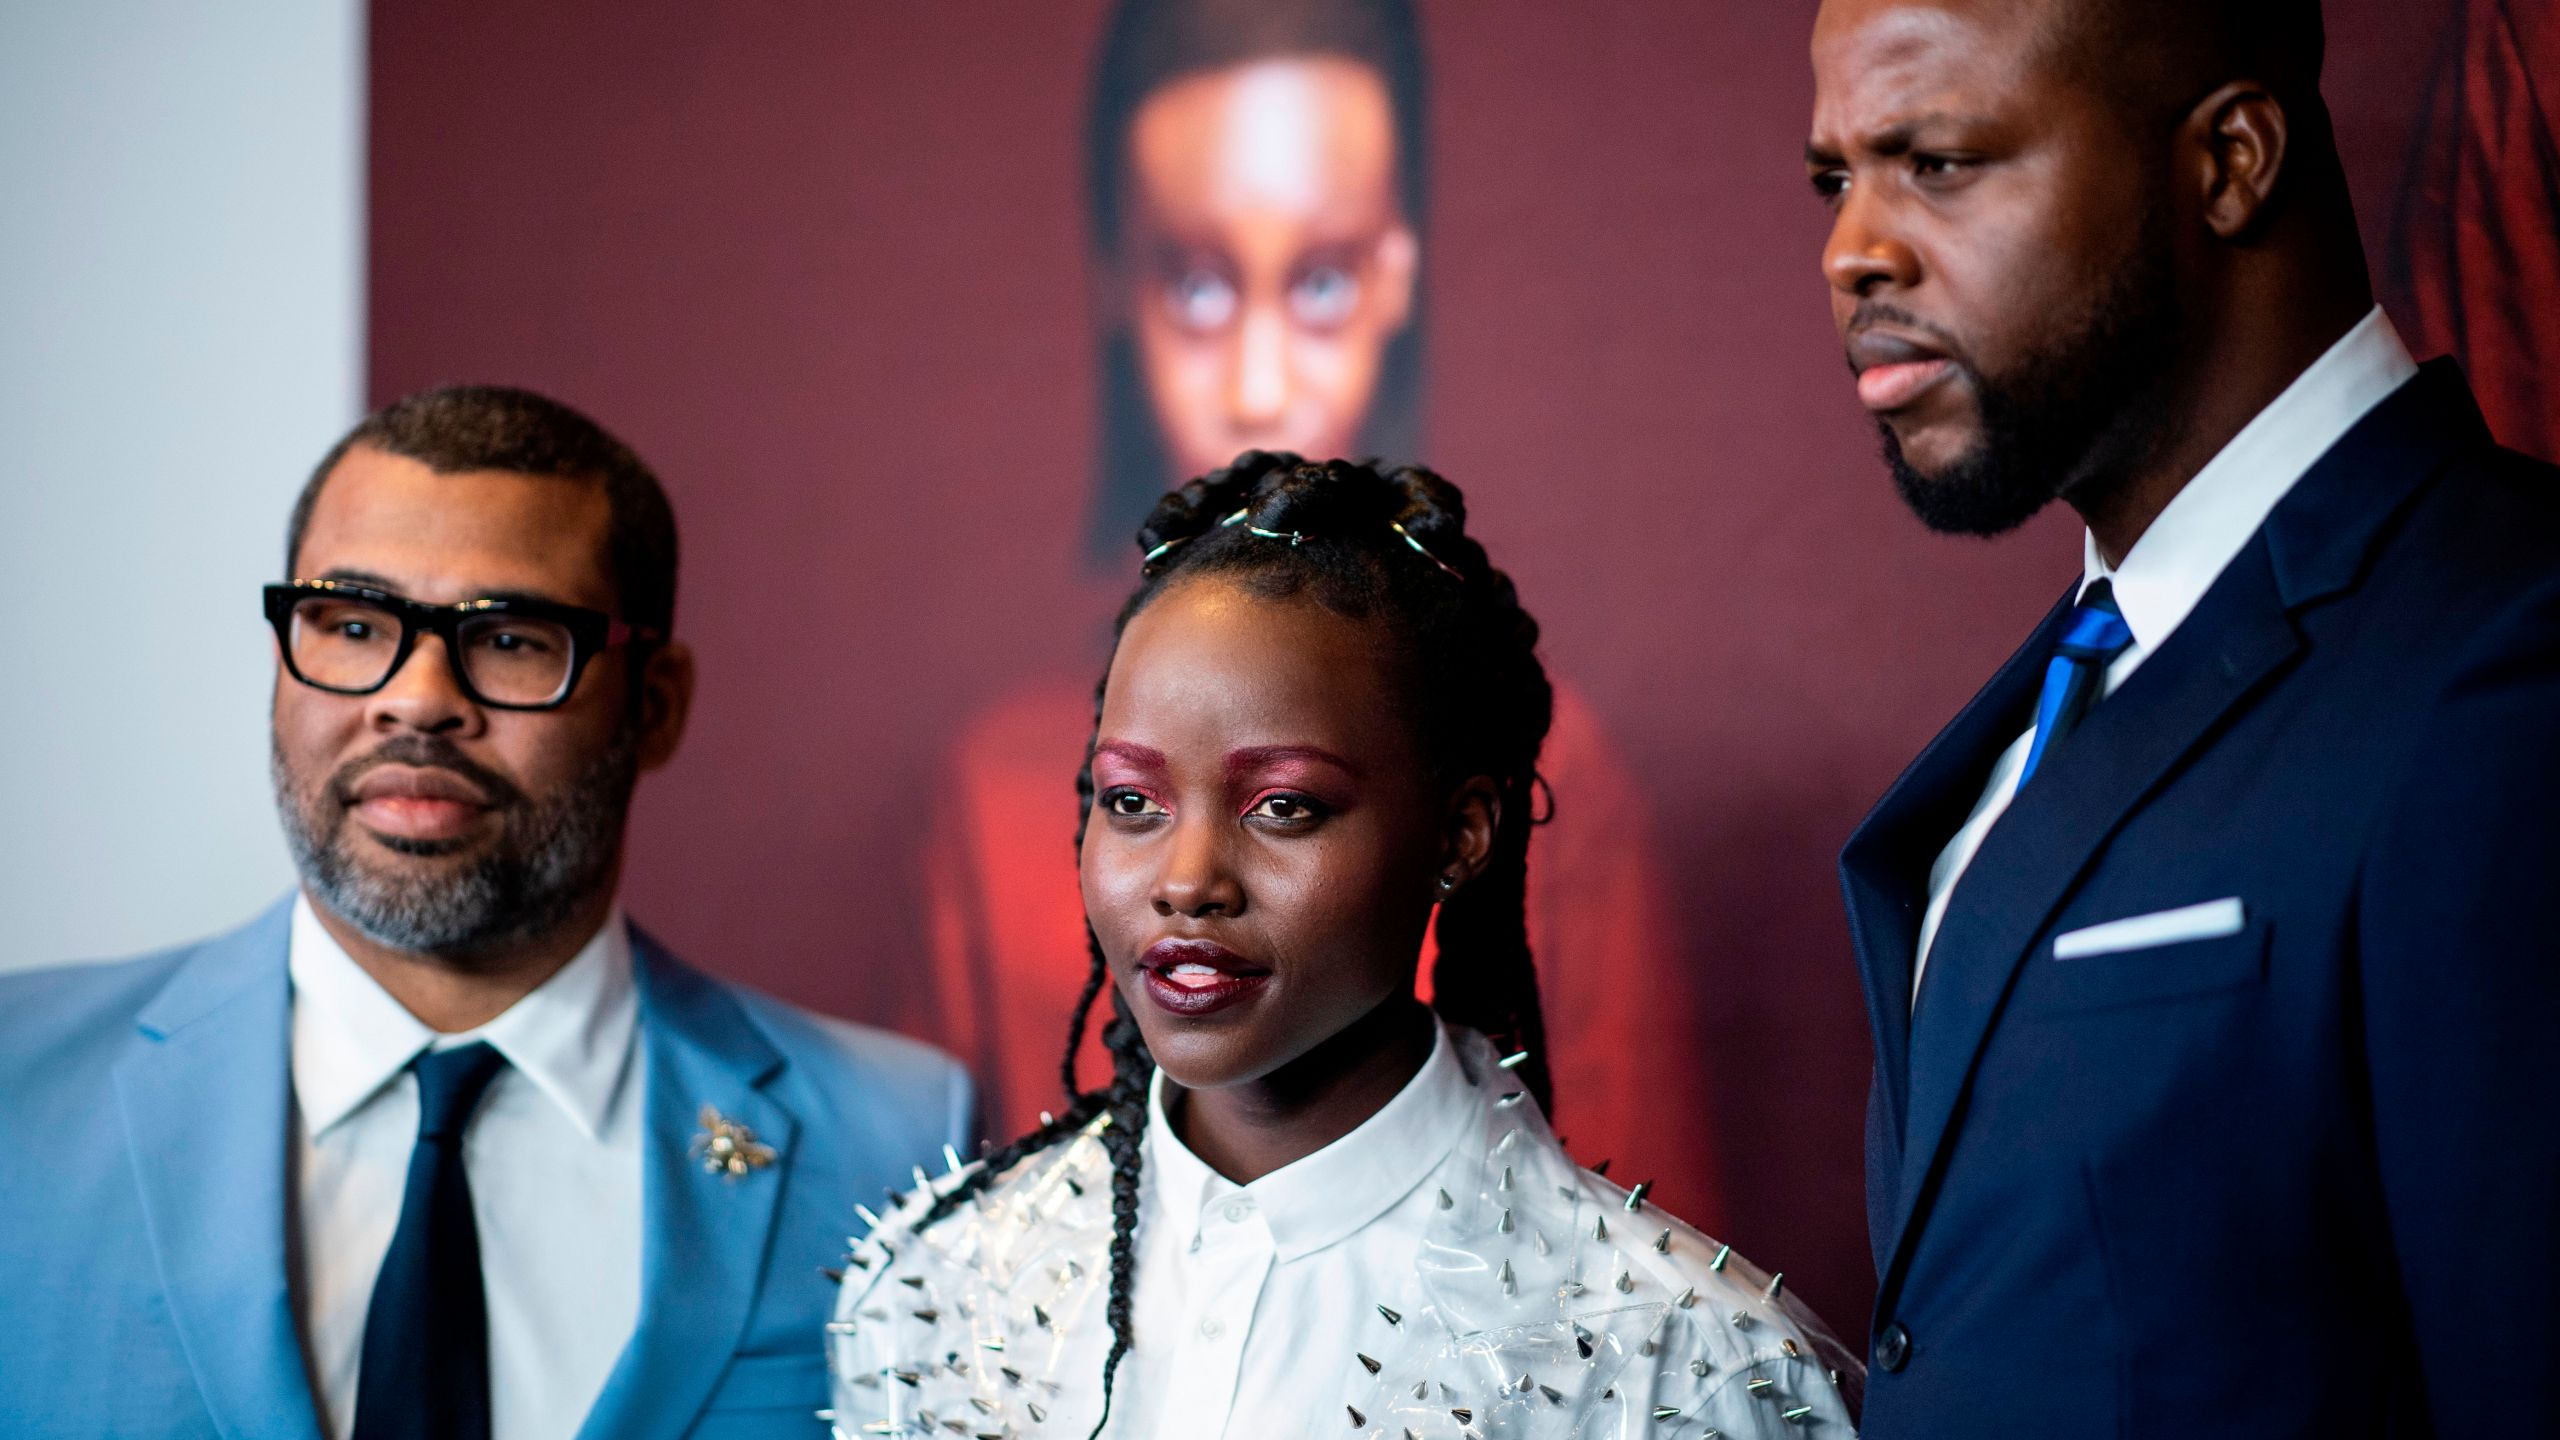 """Director/writer Jordan Peele, actress Lupita Nyong'o and actor Winston Duke arrive for the New York premiere of """"US"""" at the Museum of Modern Art in New York City. (Credit: JOHANNES EISELE/AFP/Getty Images)"""